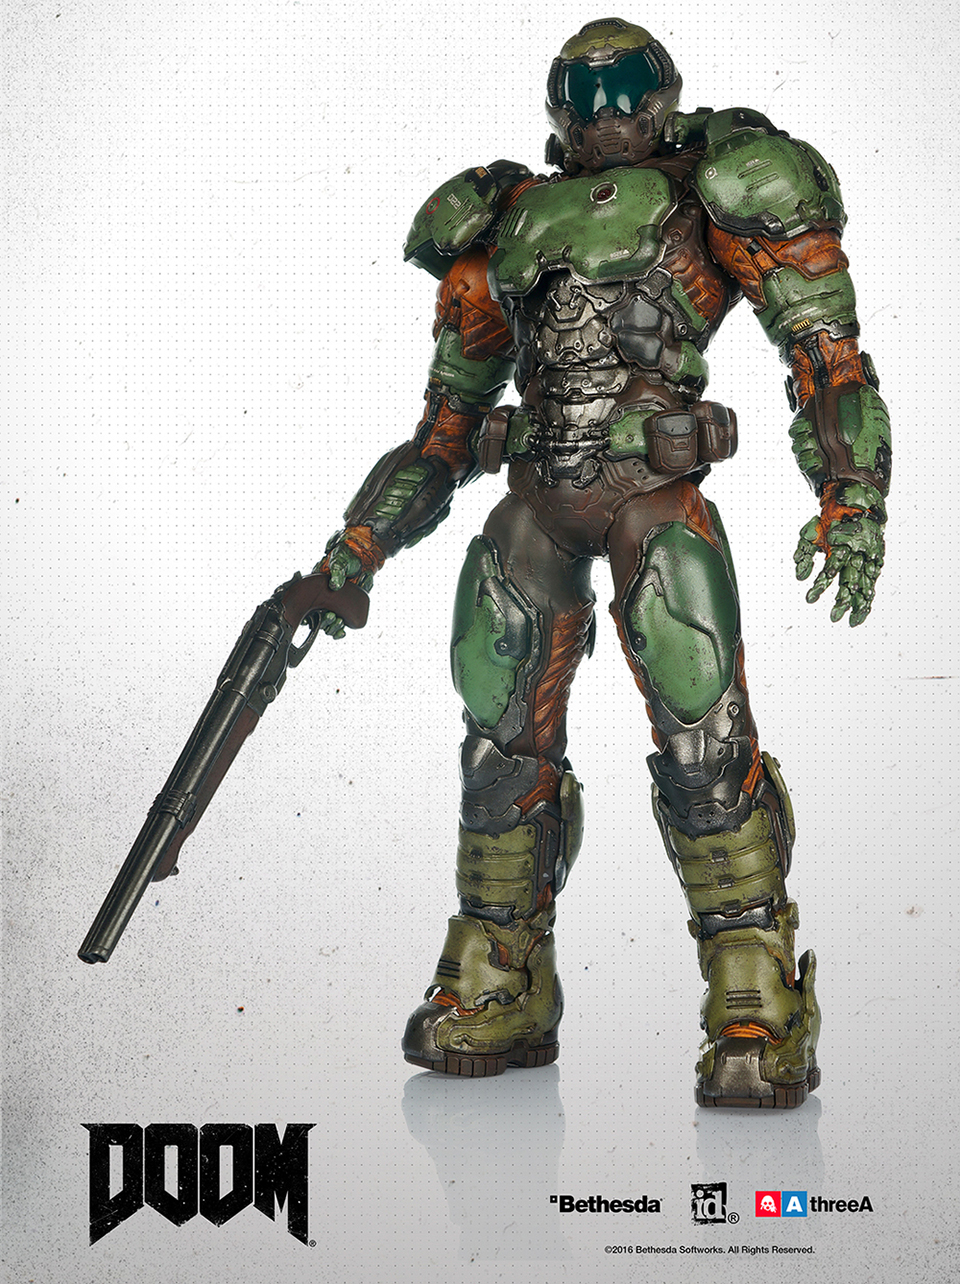 3A Toys Doom Marine 1/6th Scale Action Figure